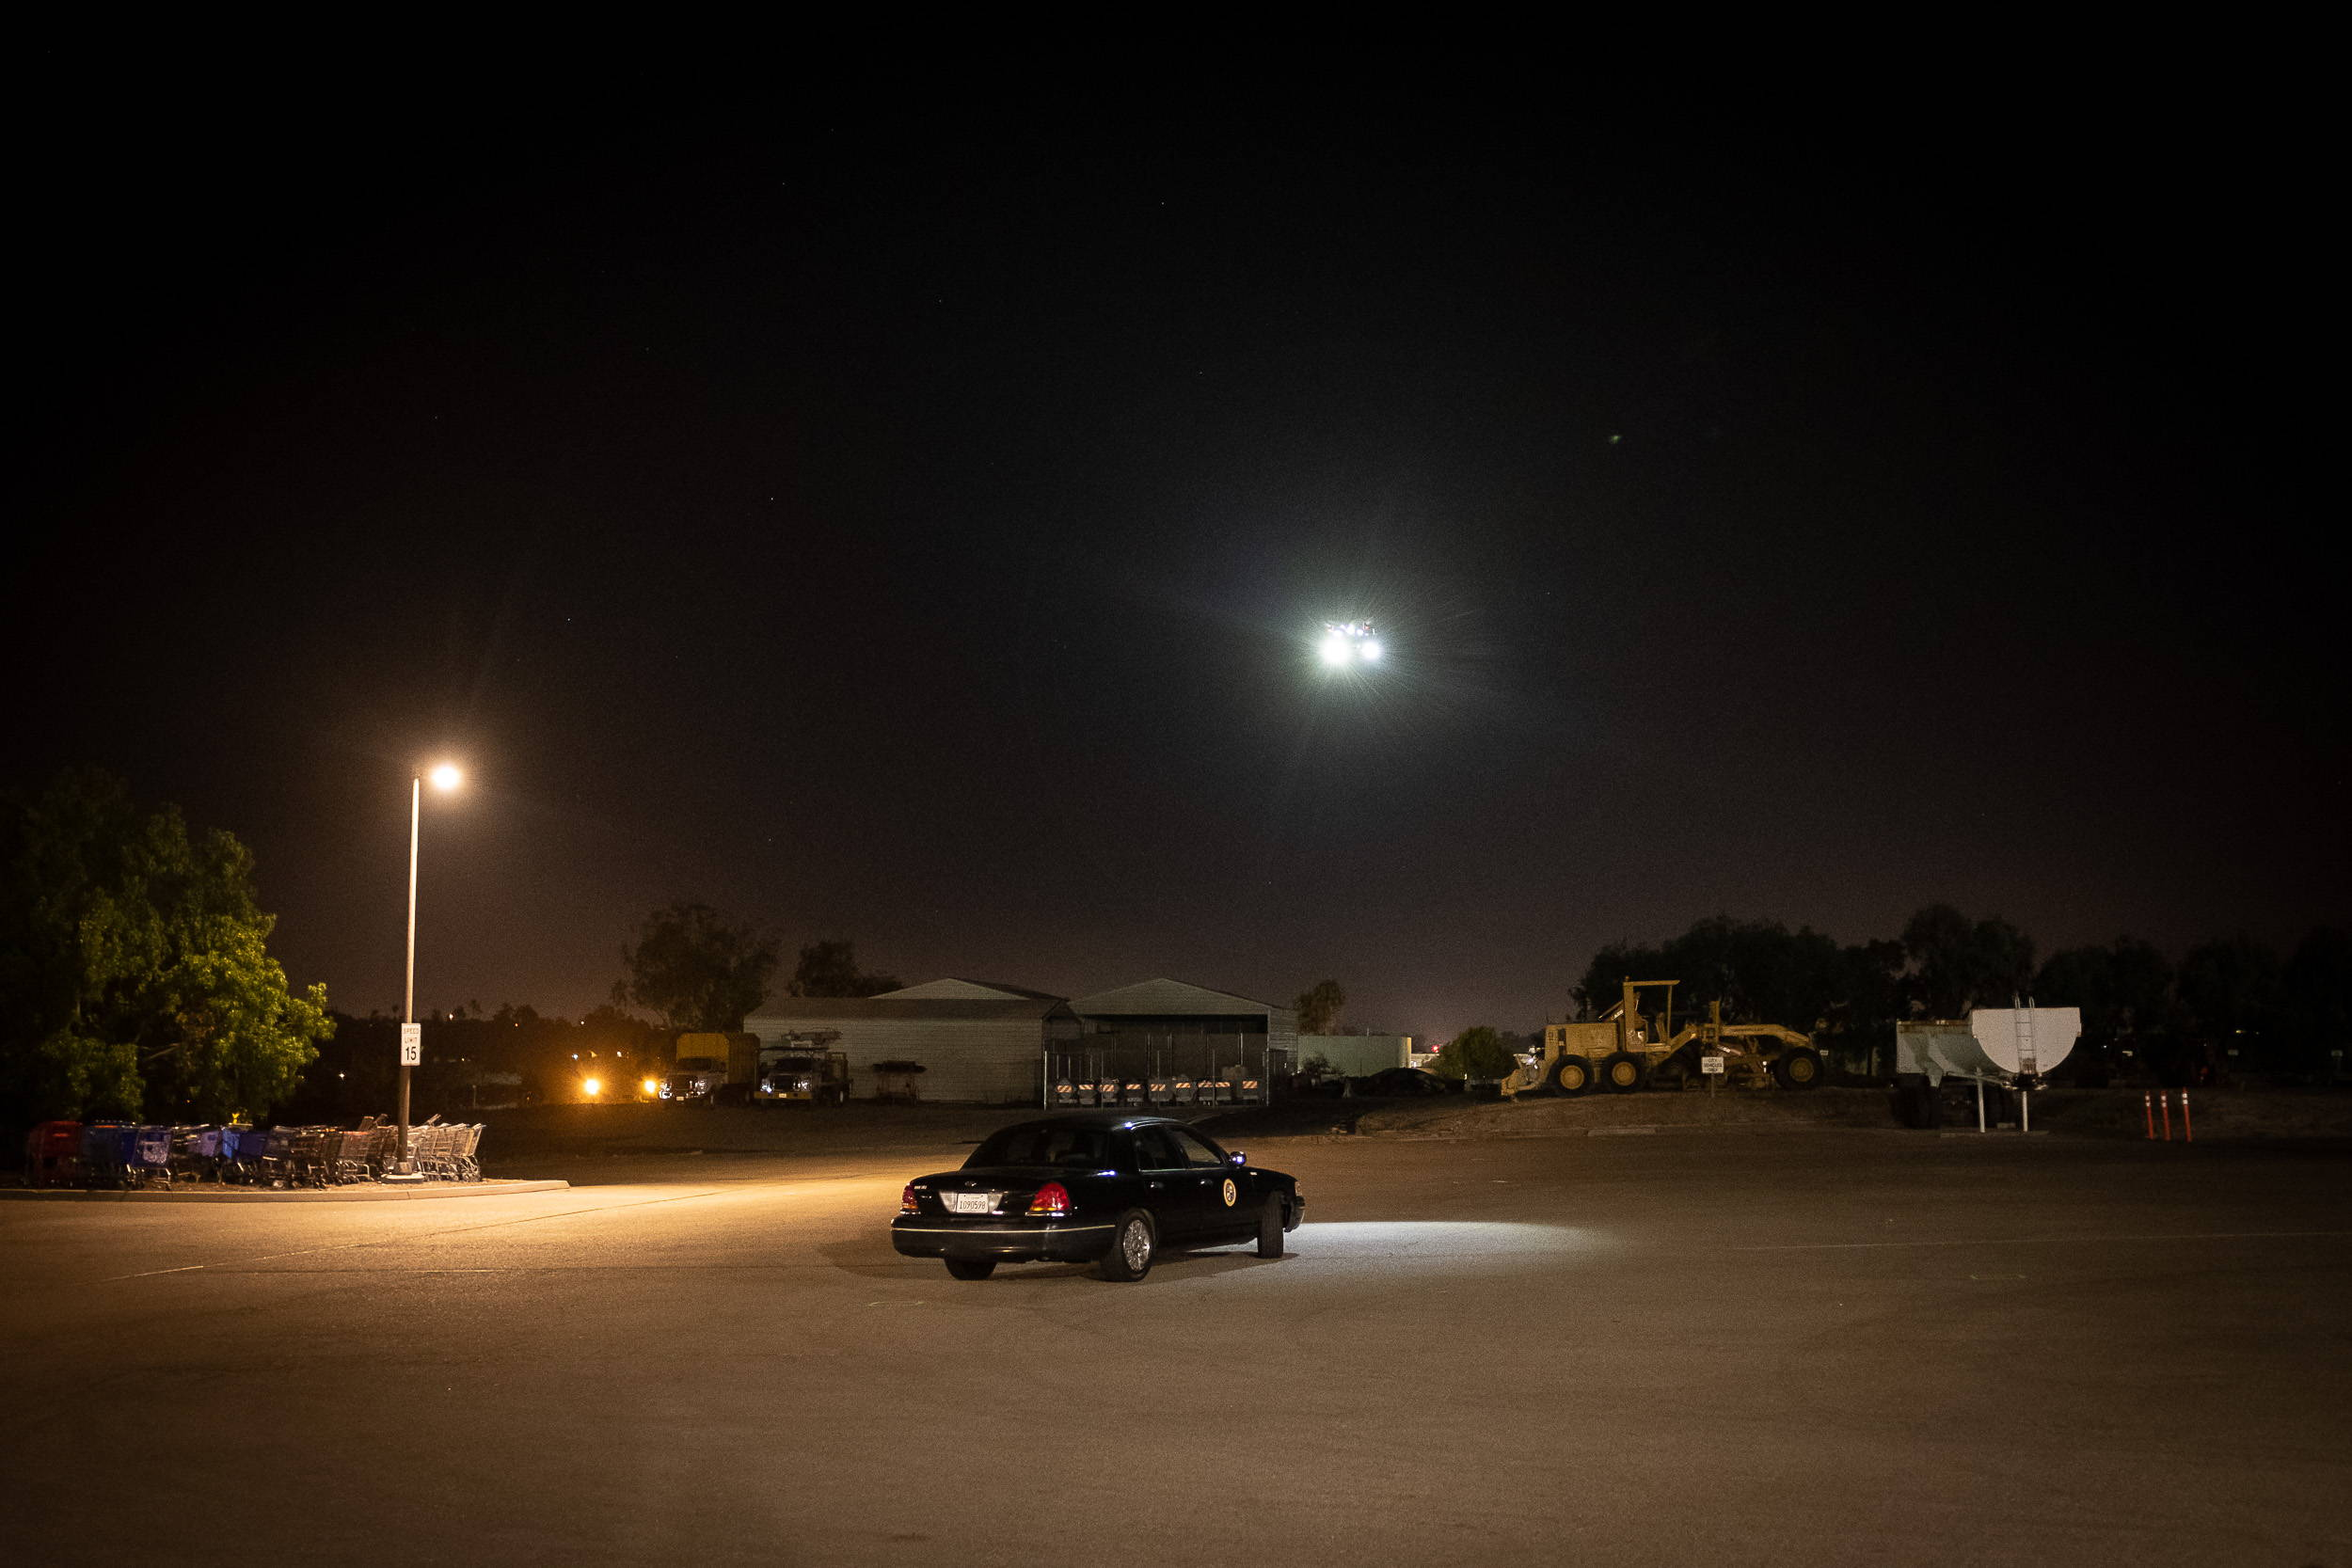 A Matrice 200 with two FoxFury Rugo lights assess a hostage situation with a vehicle.